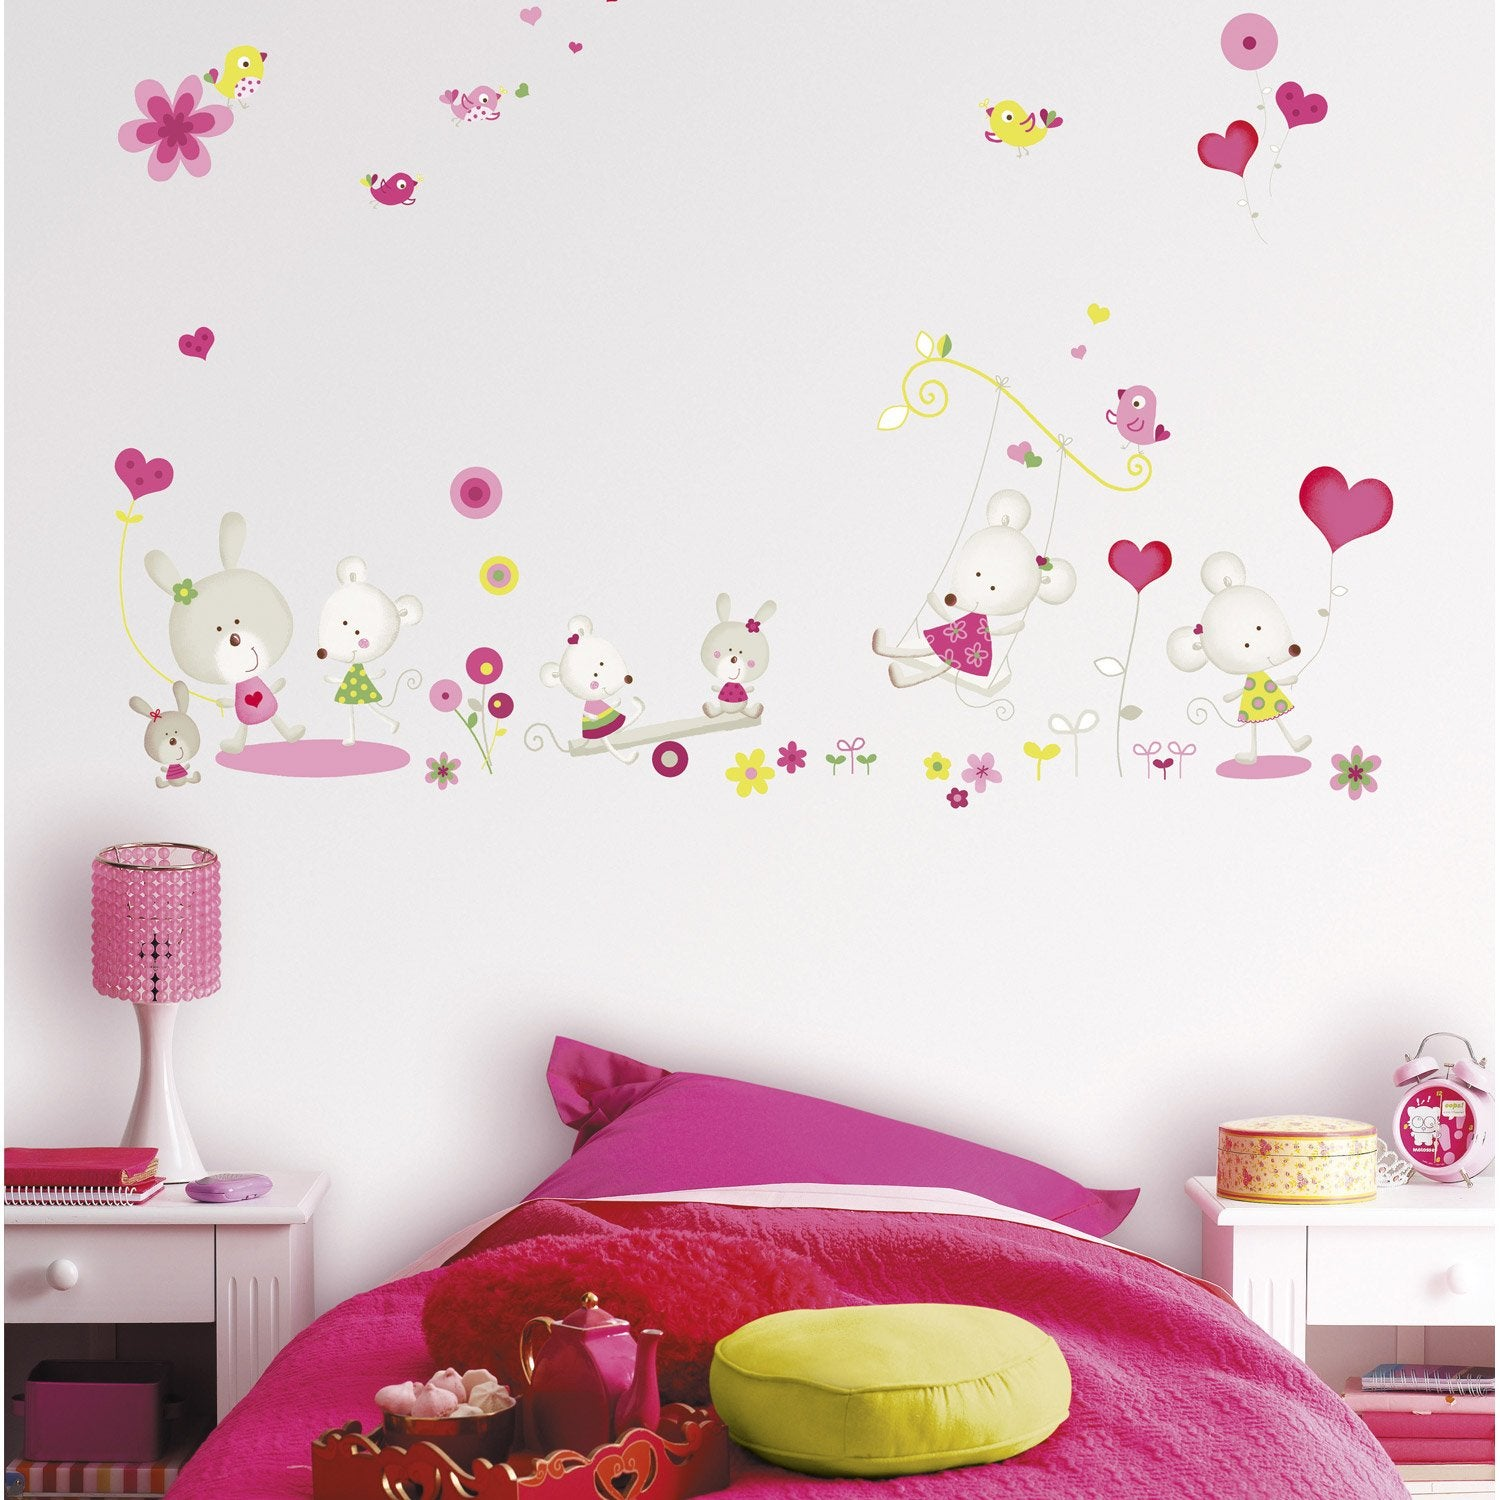 Sticker miss mousse 47 cm x 67 cm leroy merlin - Stickers pour chambre fille ...